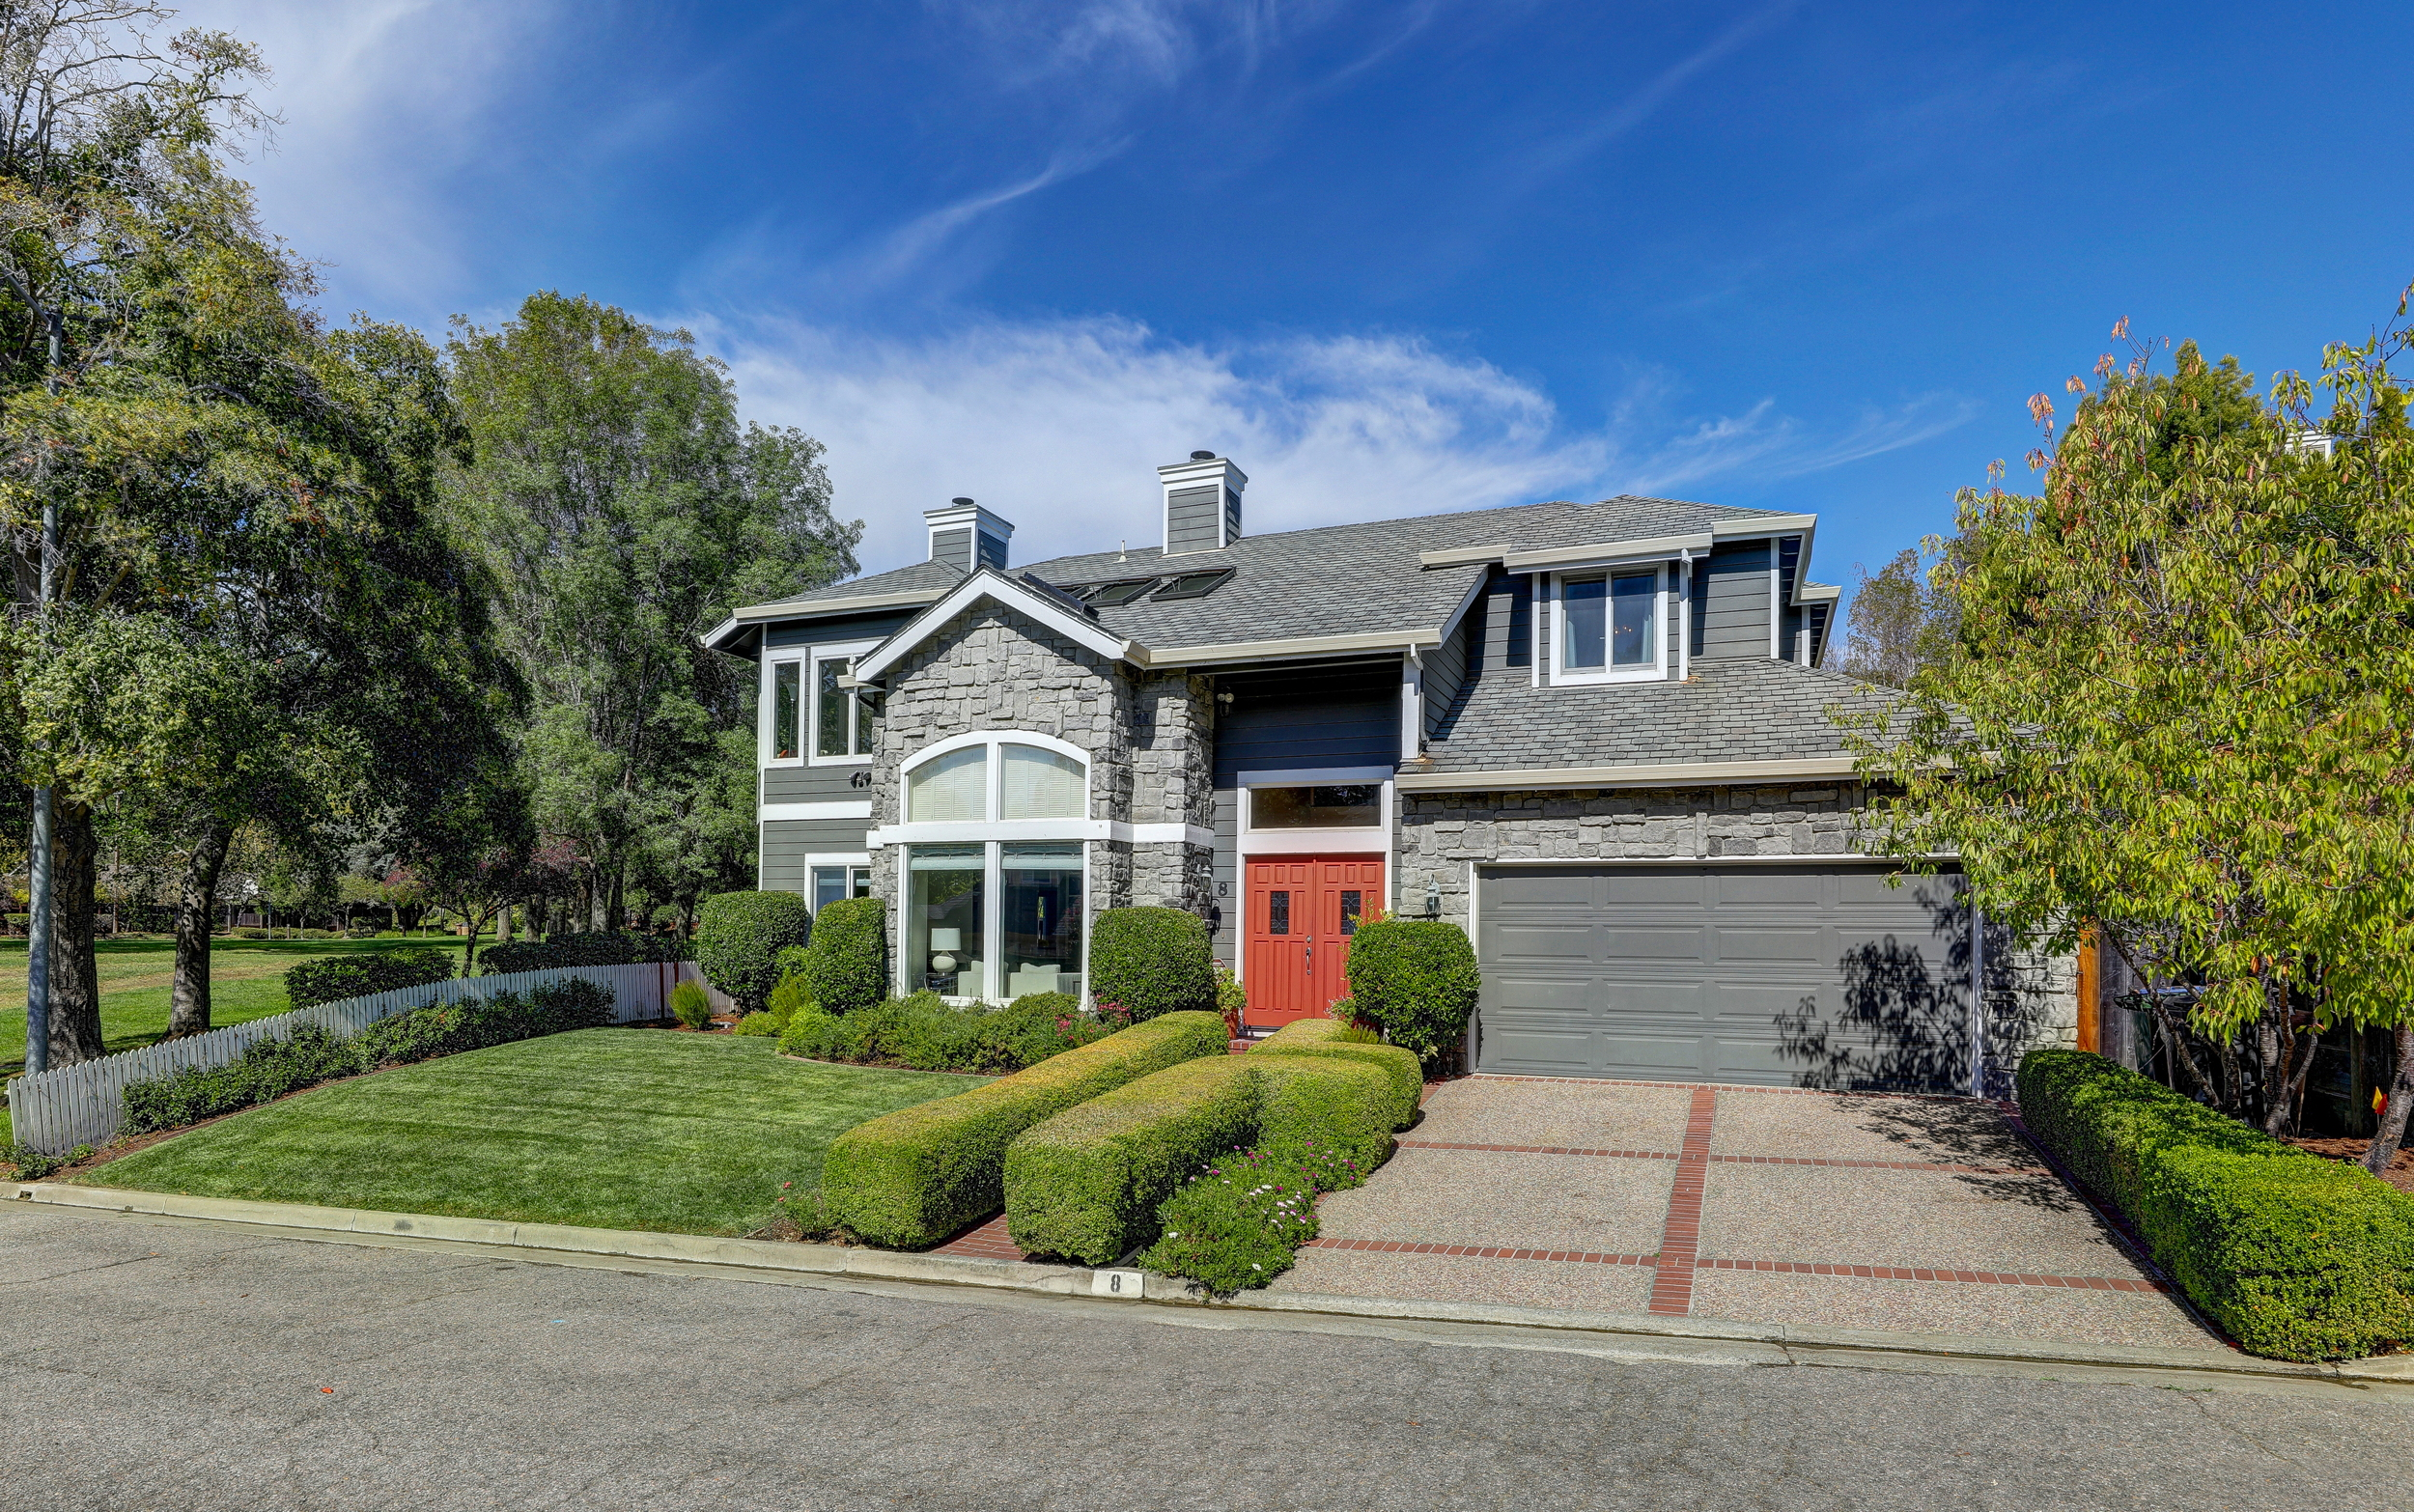 8Parkside 05 - Own Marin with Compass - Marin County Best Realtor.jpg